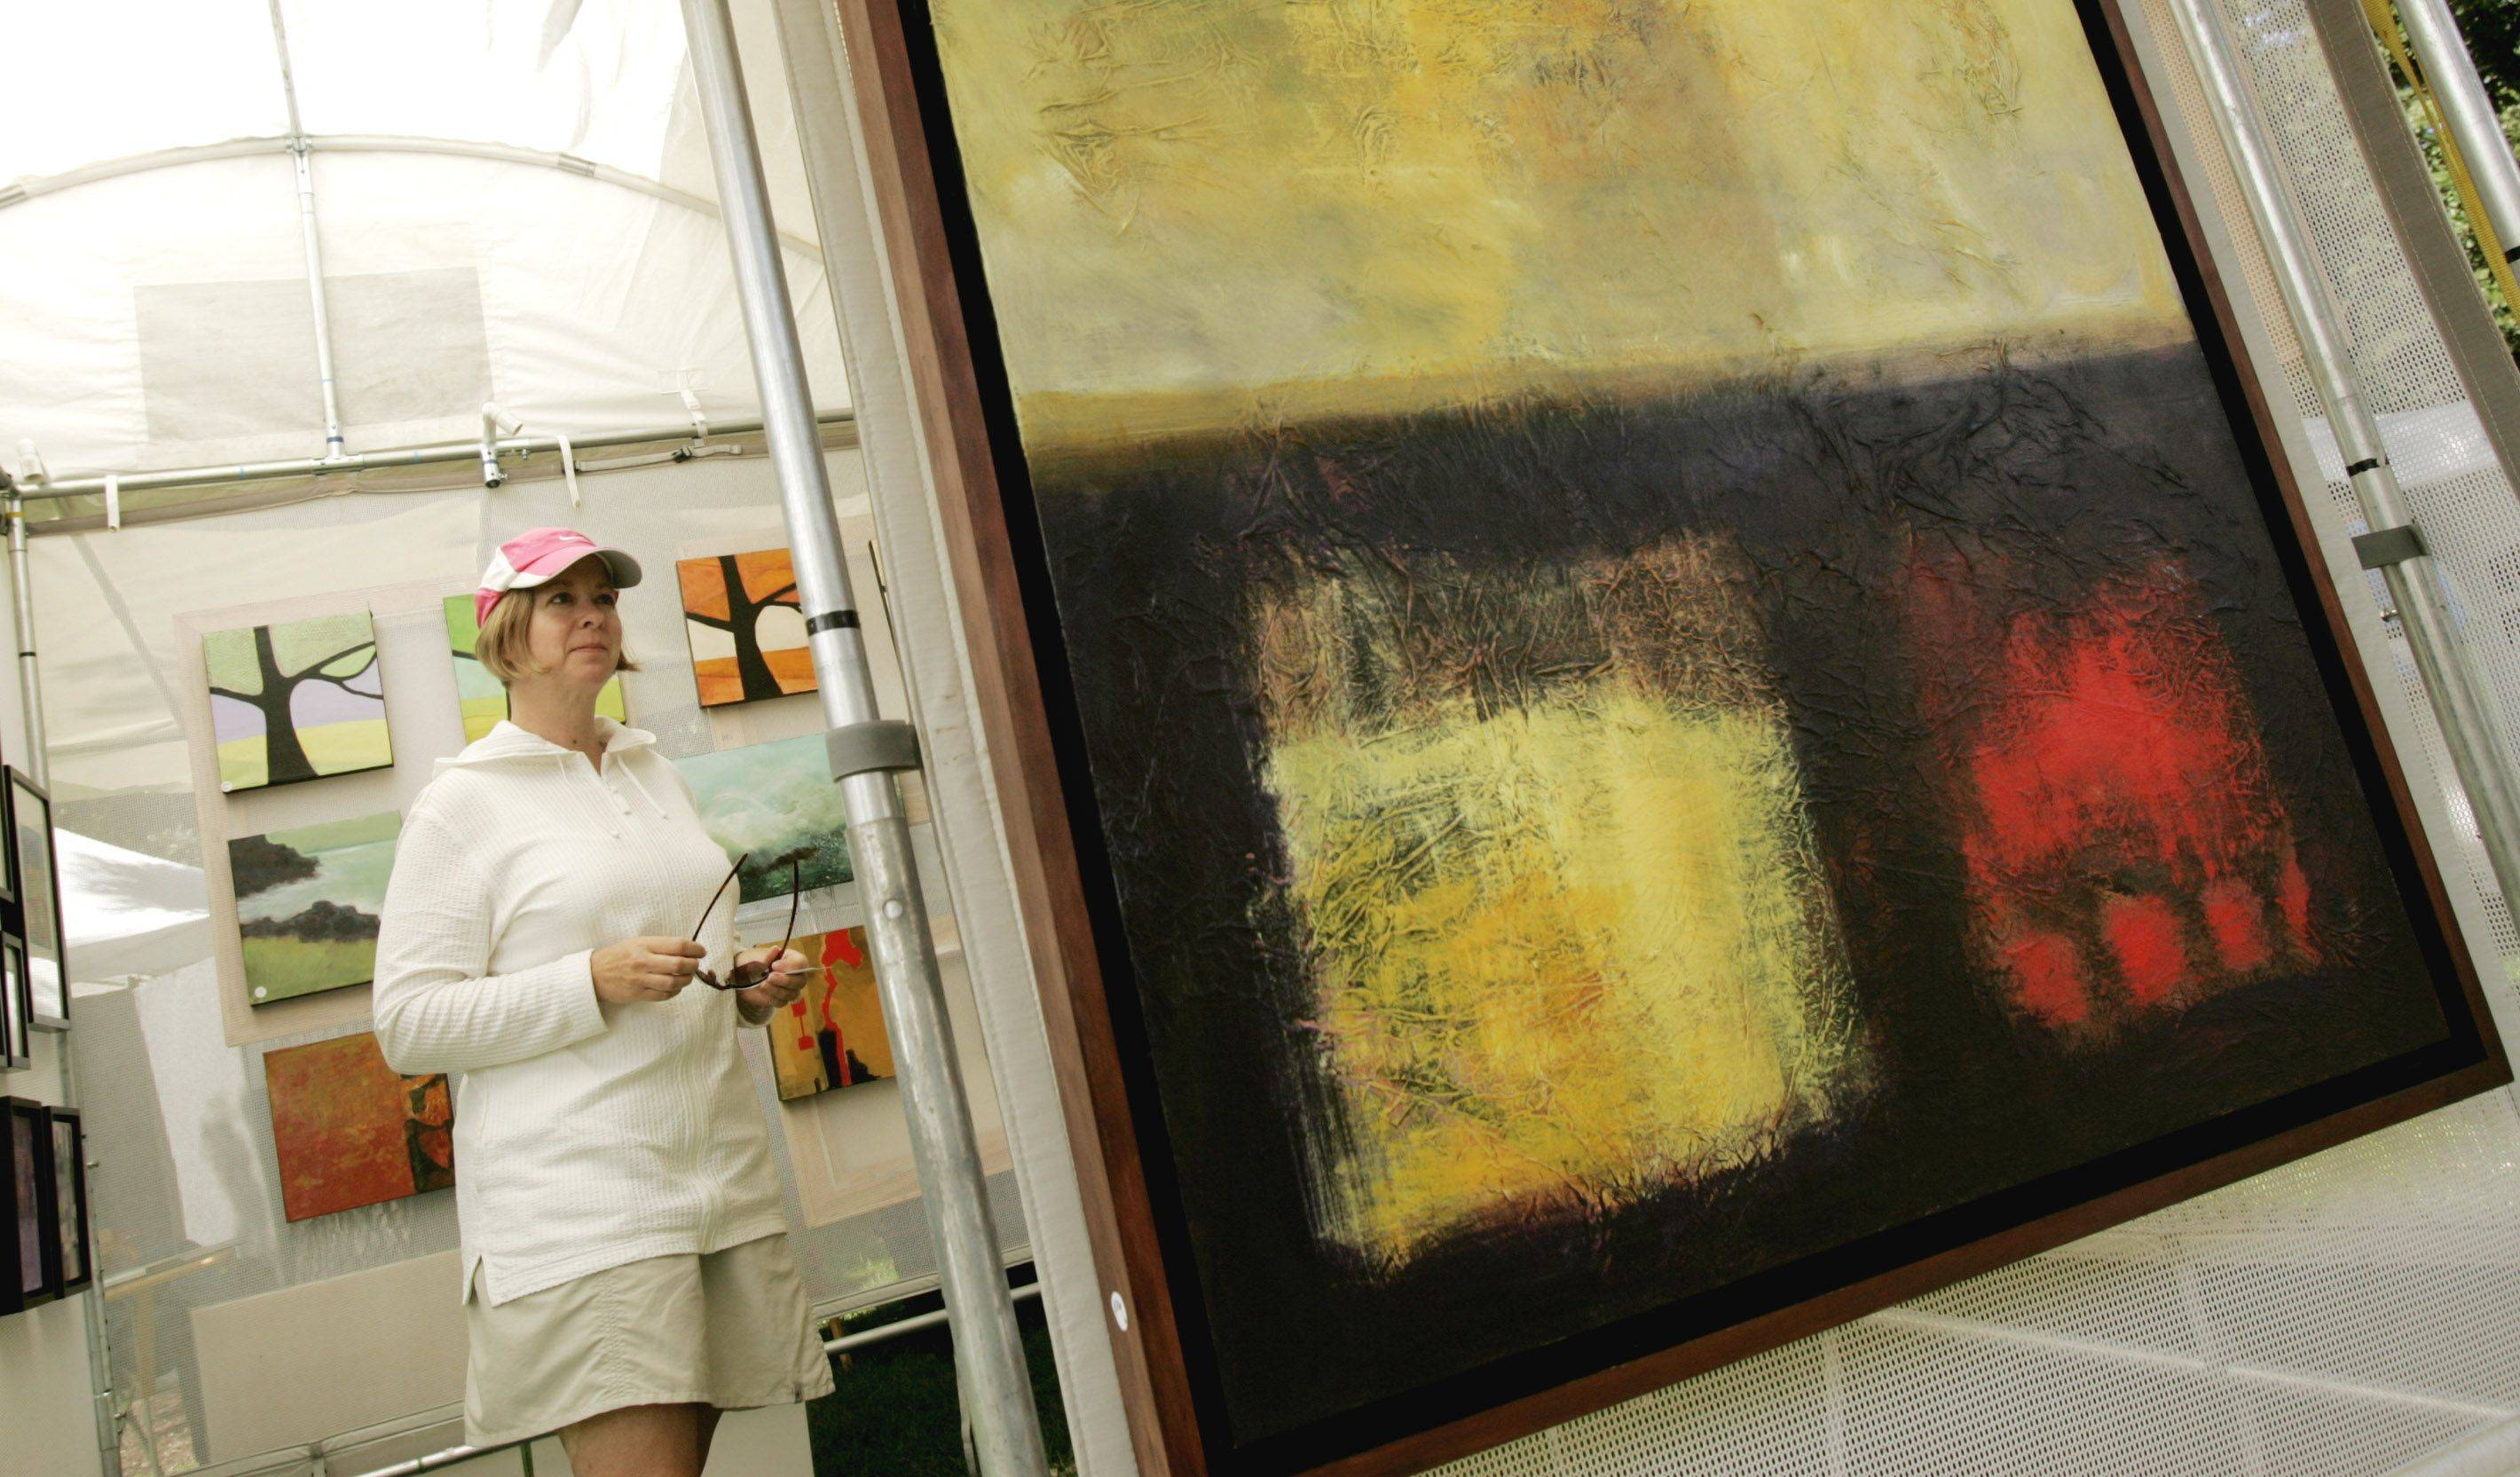 The 2011 Glen Ellyn Festival of the Arts will feature more than 80 artists specializing in painting, sculpture, jewelry making and more.